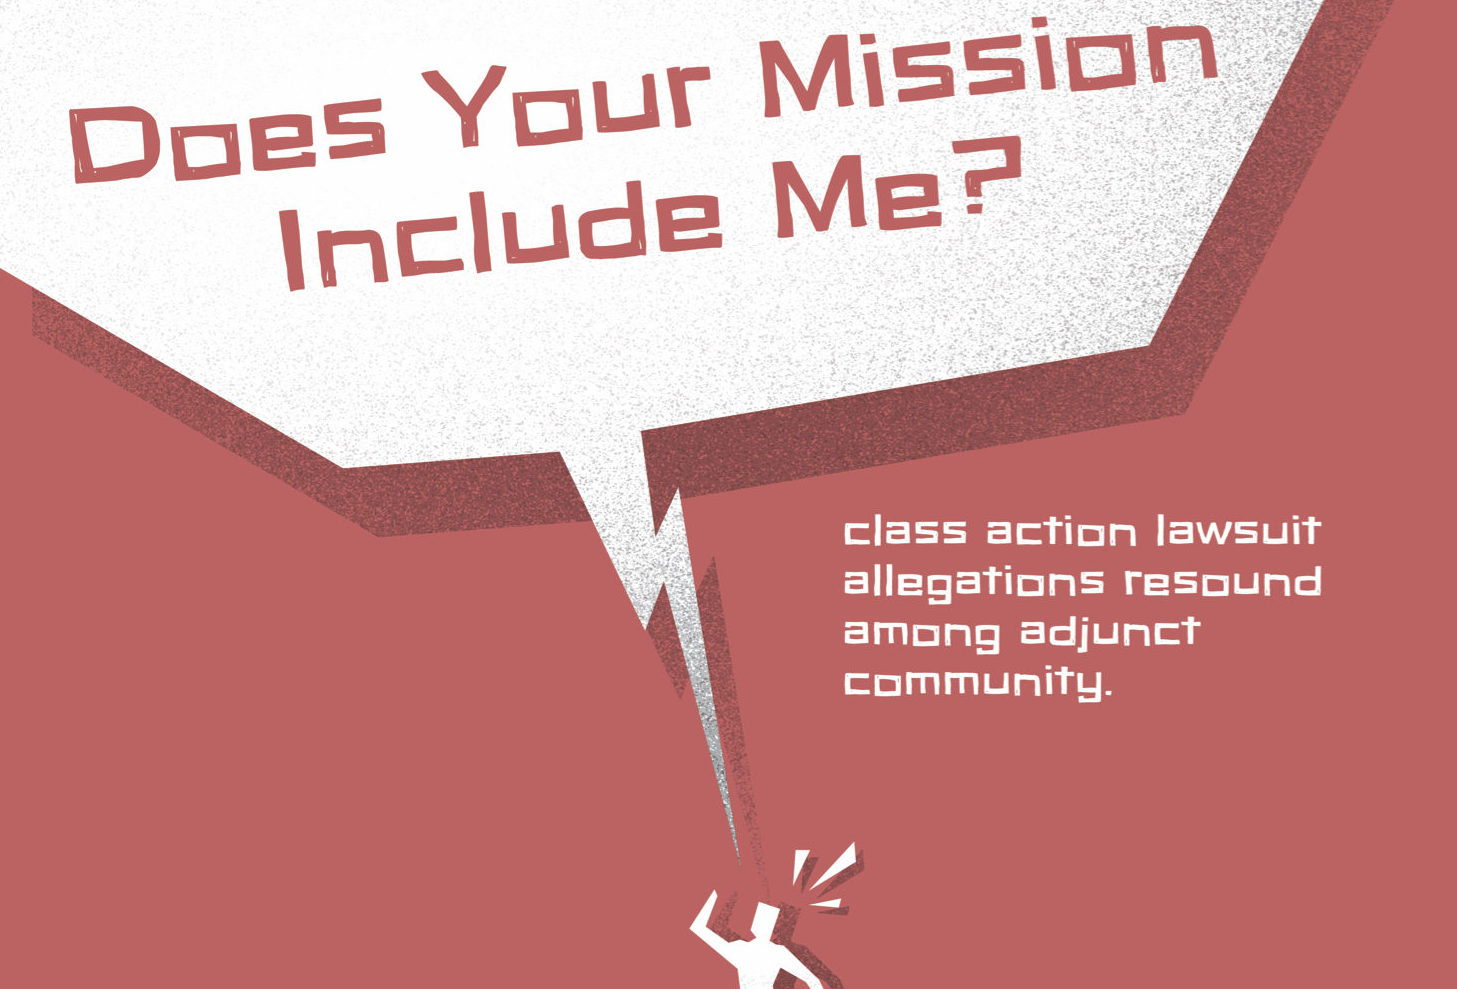 Lawsuit Allegations Resound Among Adjunct Community